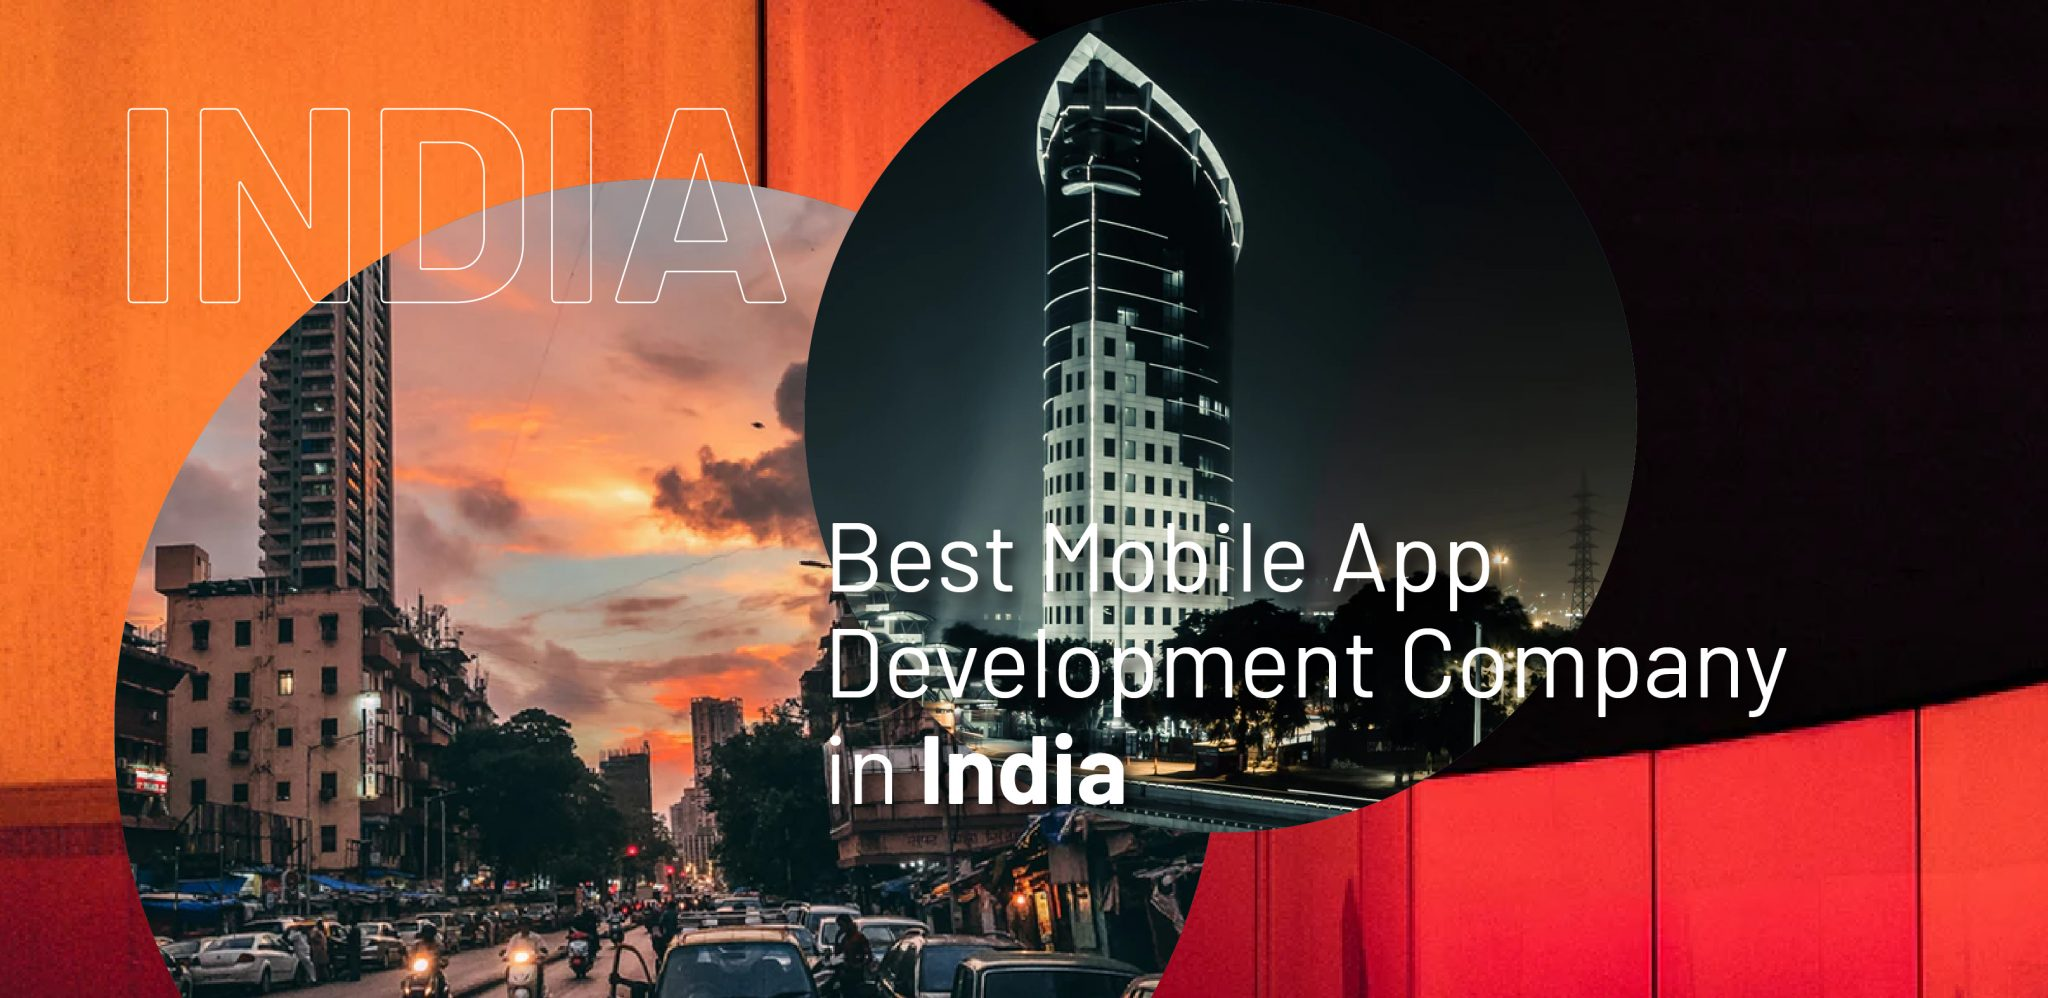 Best Mobile App Development Company in India - WebClues Infotech